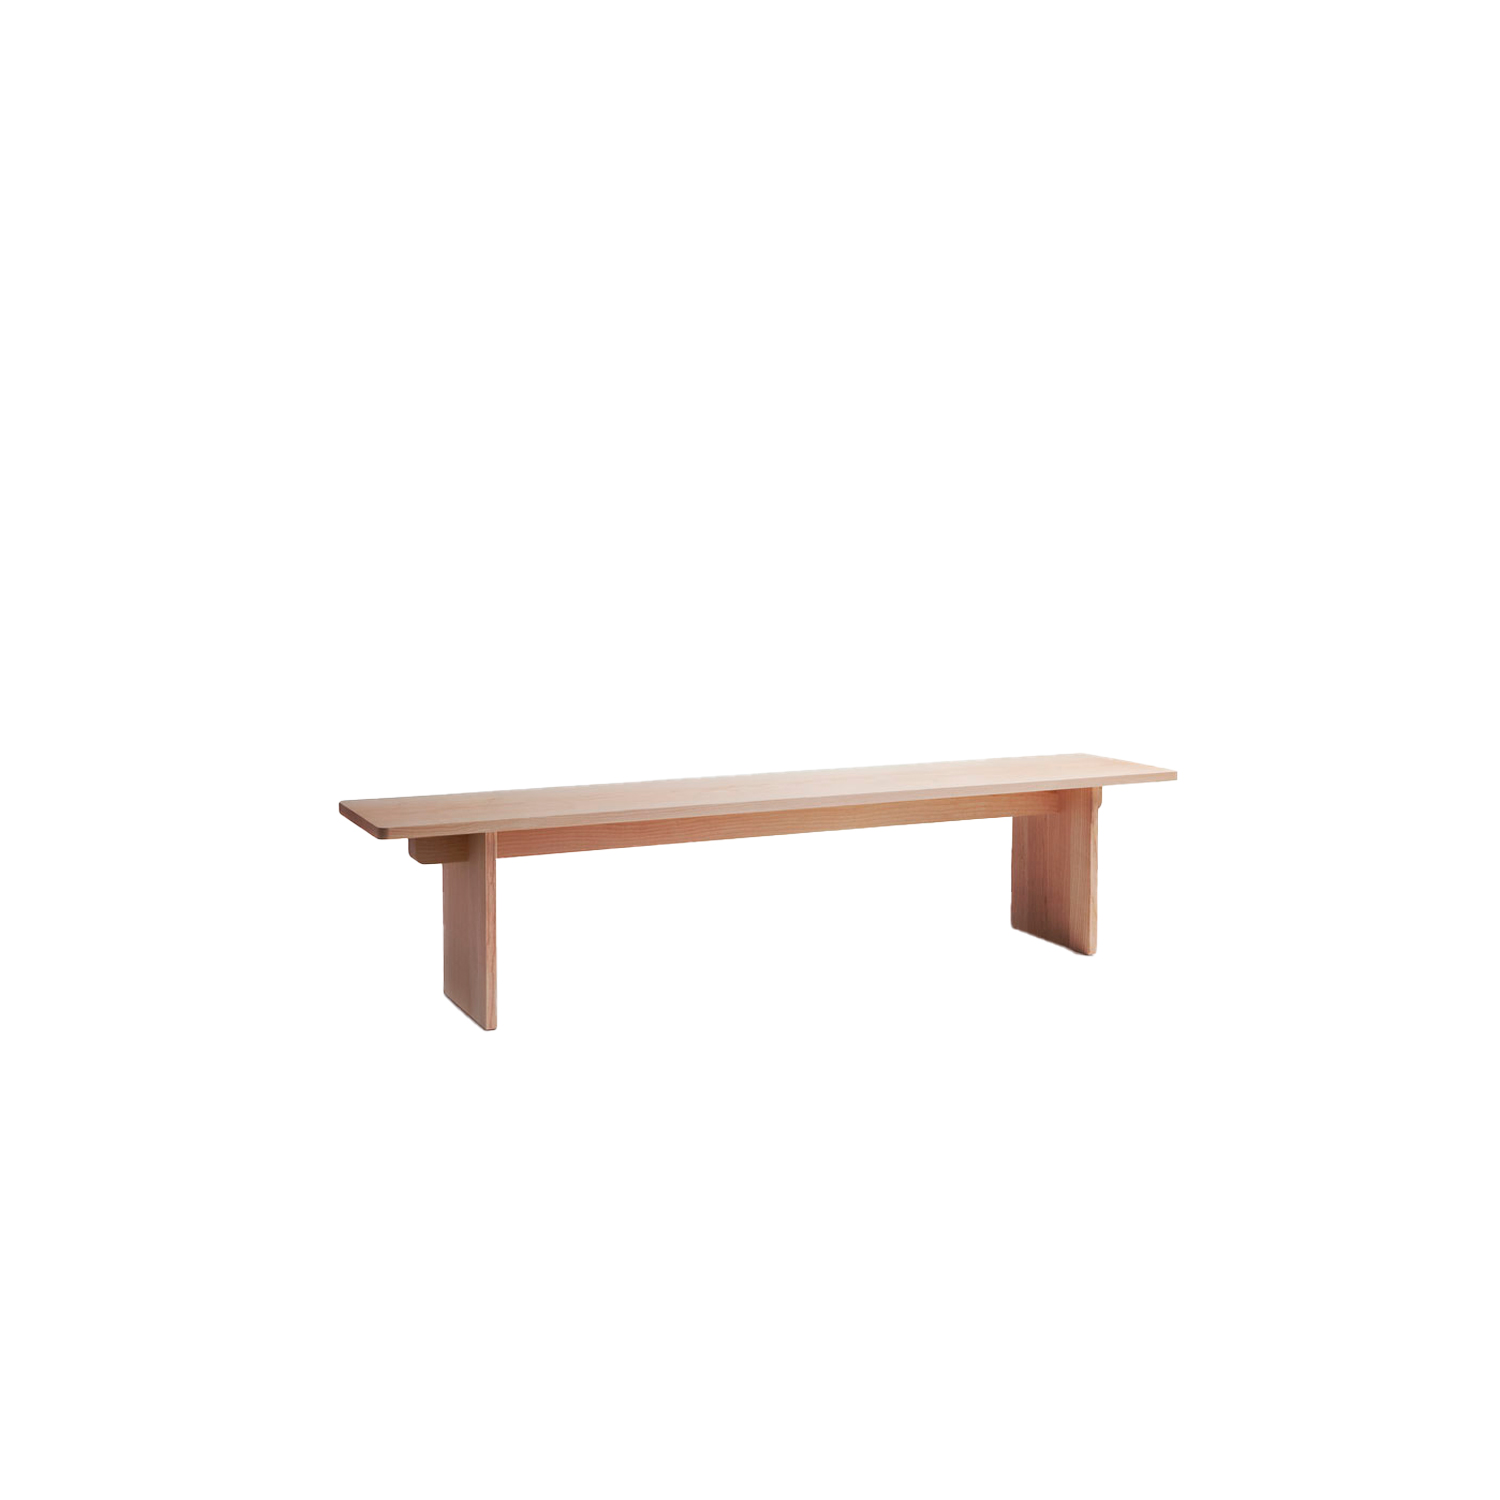 Edi Bench - The EDI bench is editable: it can be ordered in three different sizes or by made by order dimensions. The durable structure makes it suitable for highly commercial use, and it also serves well as a side table. The EDI bench is available in ash or oak with an oiled finish.   Made by order dimensions -  Option 1: L186-240 x W40 x H45 cm / Option 2: L240-270 x W40 x H45 cm / Option 3: L280-310 x W40 x H45 cm  For more information regarding Made By Order Options, please inquire.    | Matter of Stuff